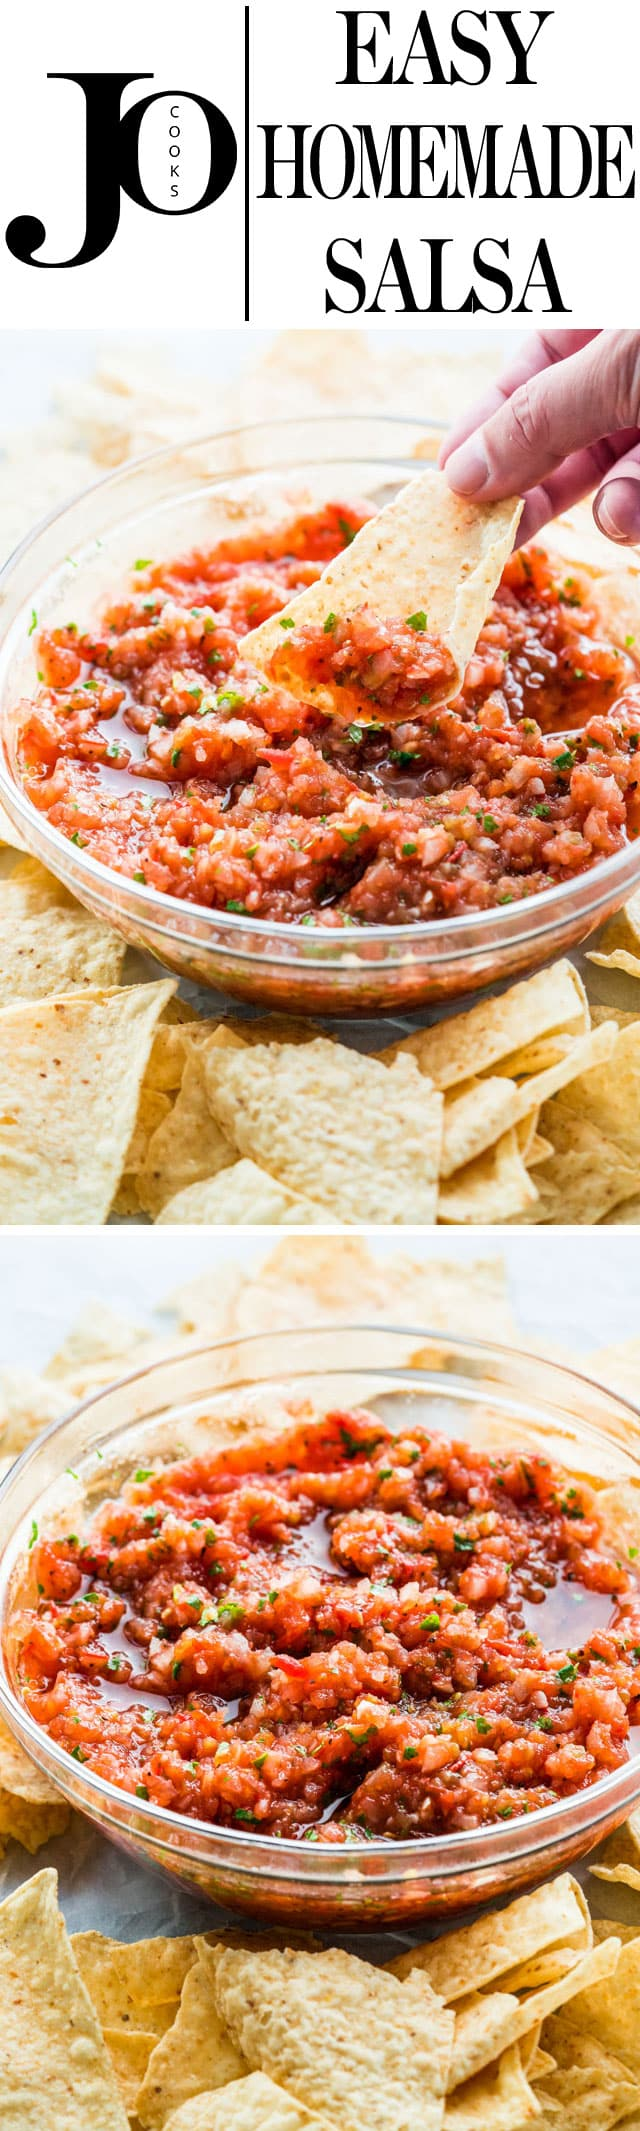 Homemade Salsa with fresh ingredients and full of flavor, just like the one you're served at your favorite restaurant! This restaurant style salsa is made with roasted tomatoes and onions which enhances all the flavors. Delicious and simple! #salsa #homemade